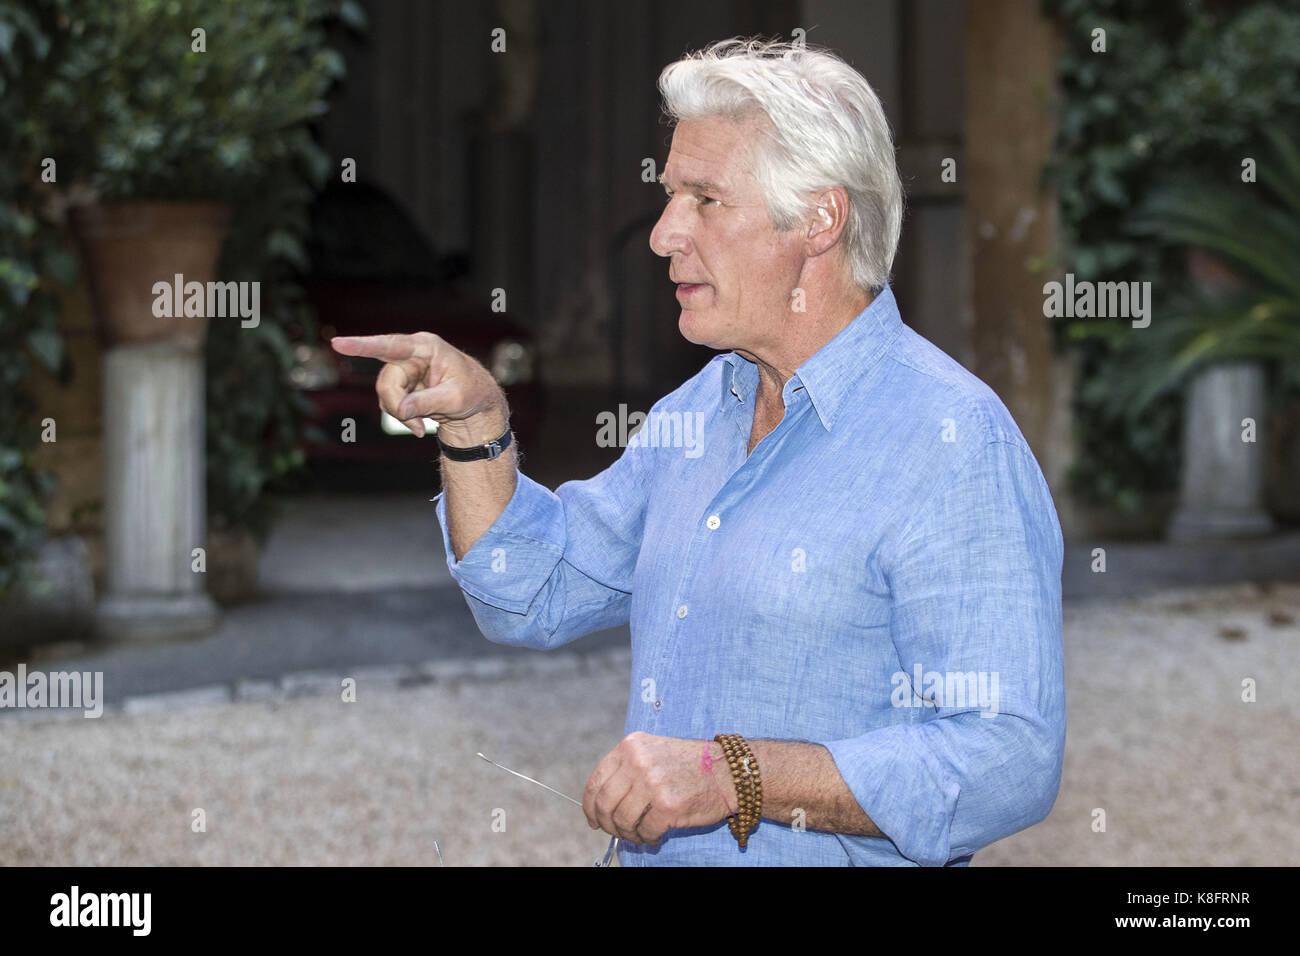 Rome, Italy. 12th Sep, 2017. Richard Gere attends the 'Norman' photocall at Quattro Fontane Hotel on September 12, Stock Photo